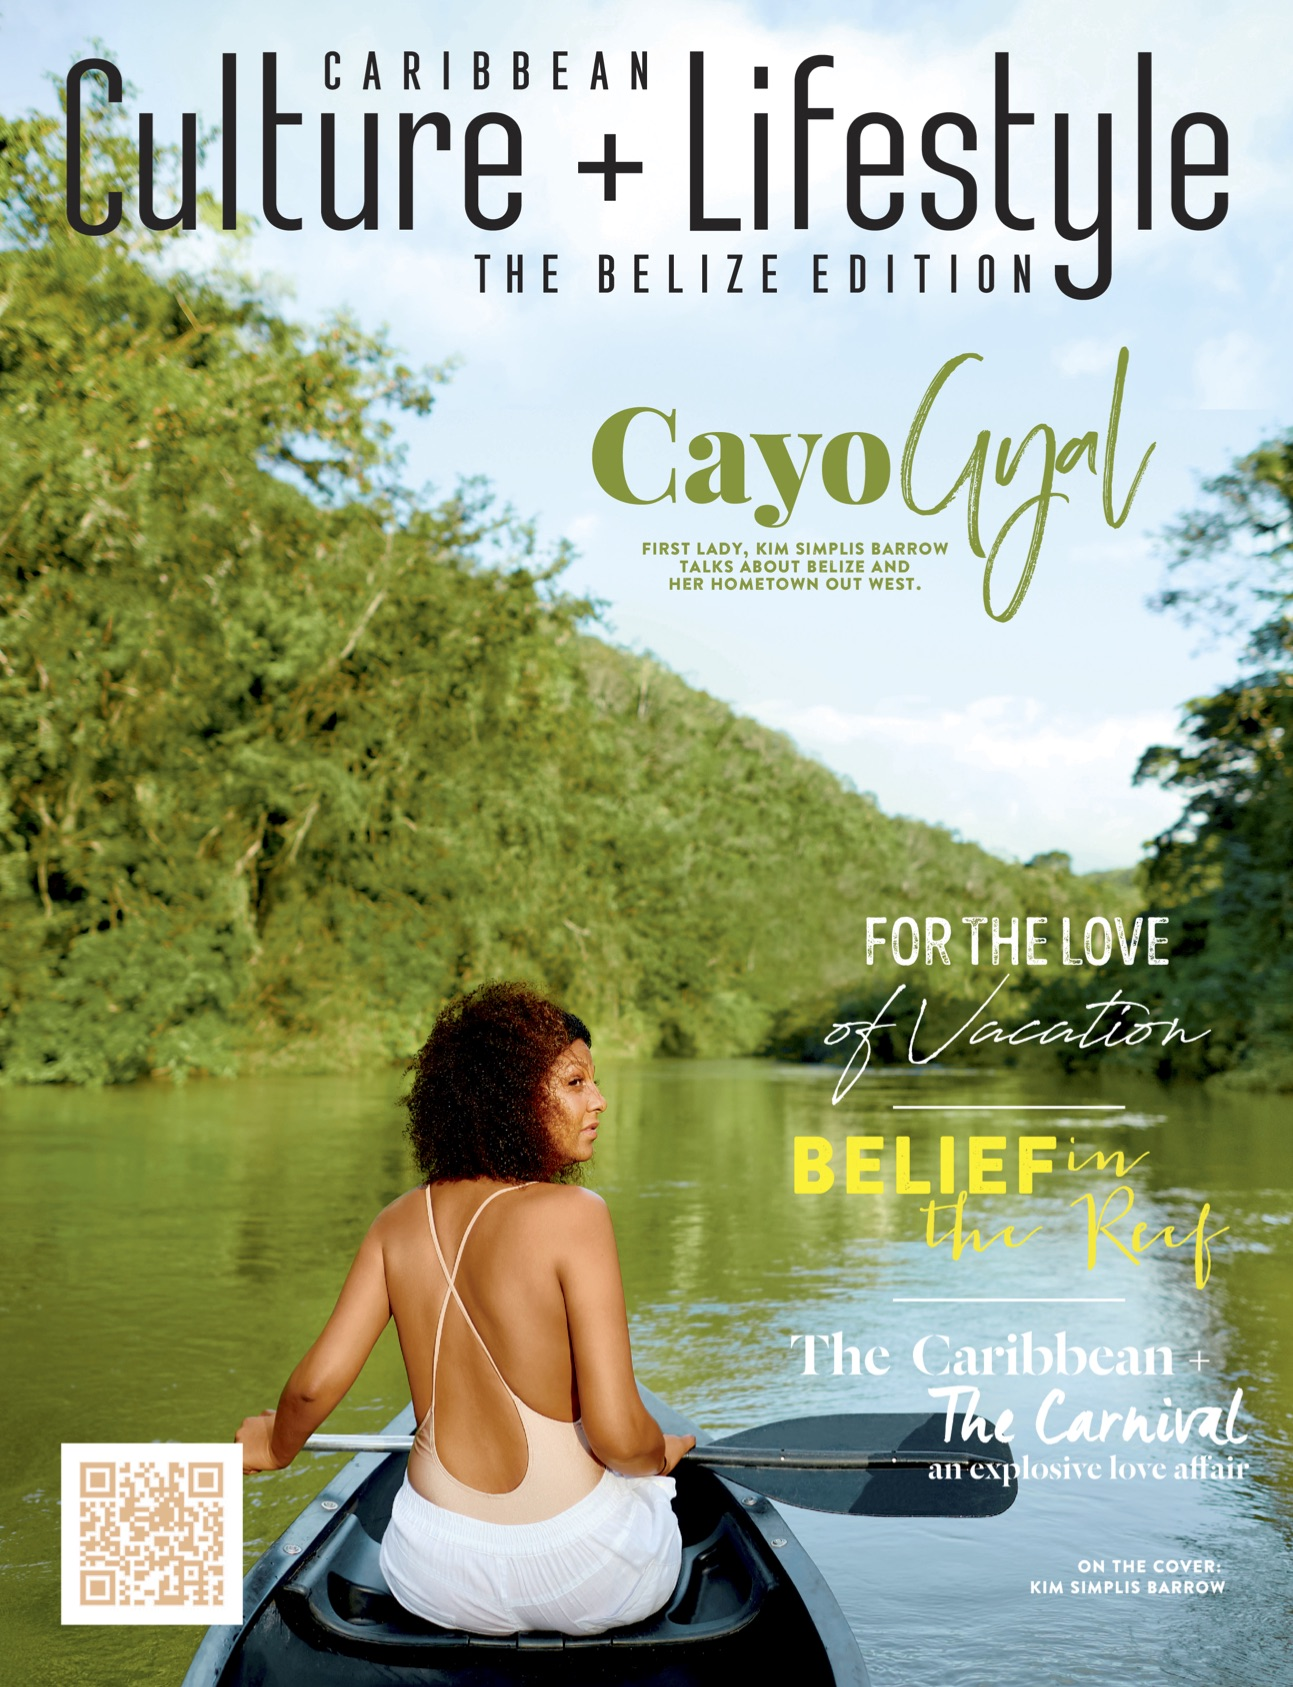 Caribbean Culture and Lifestyle